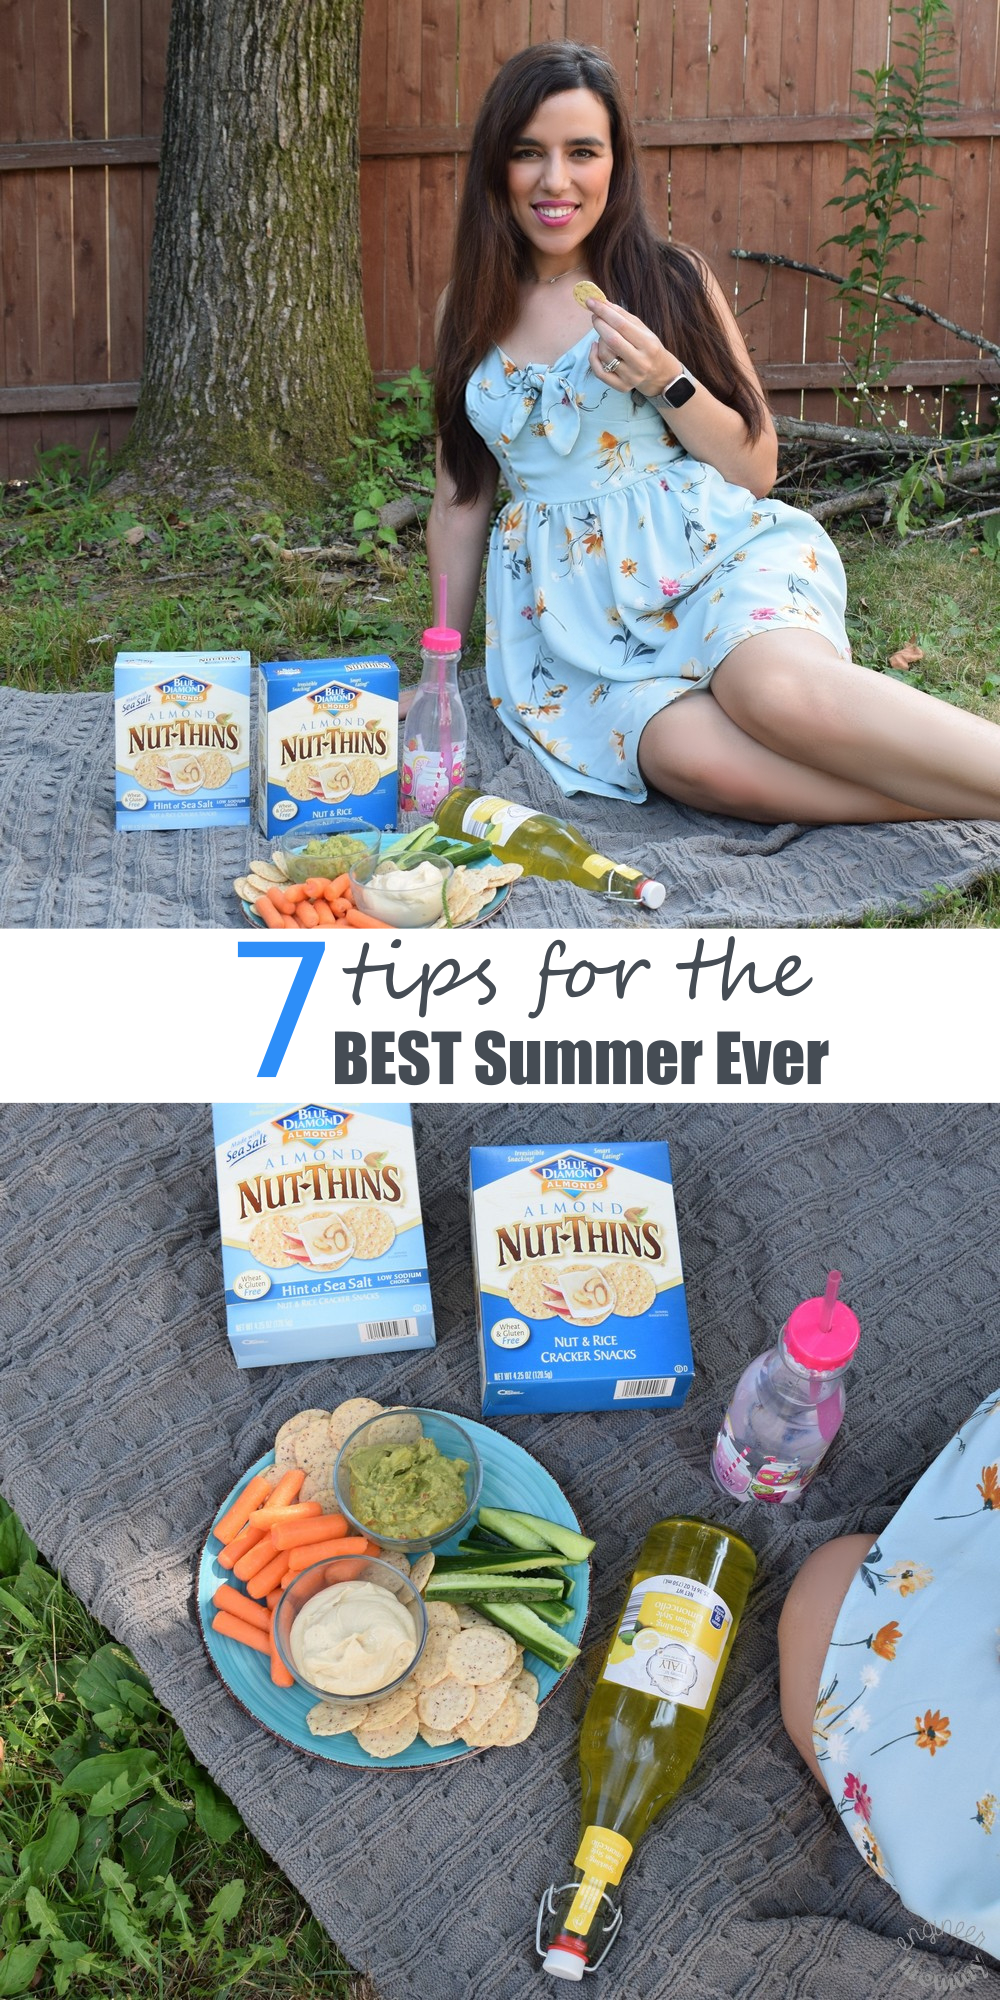 7 Tips for the Best Summer Ever